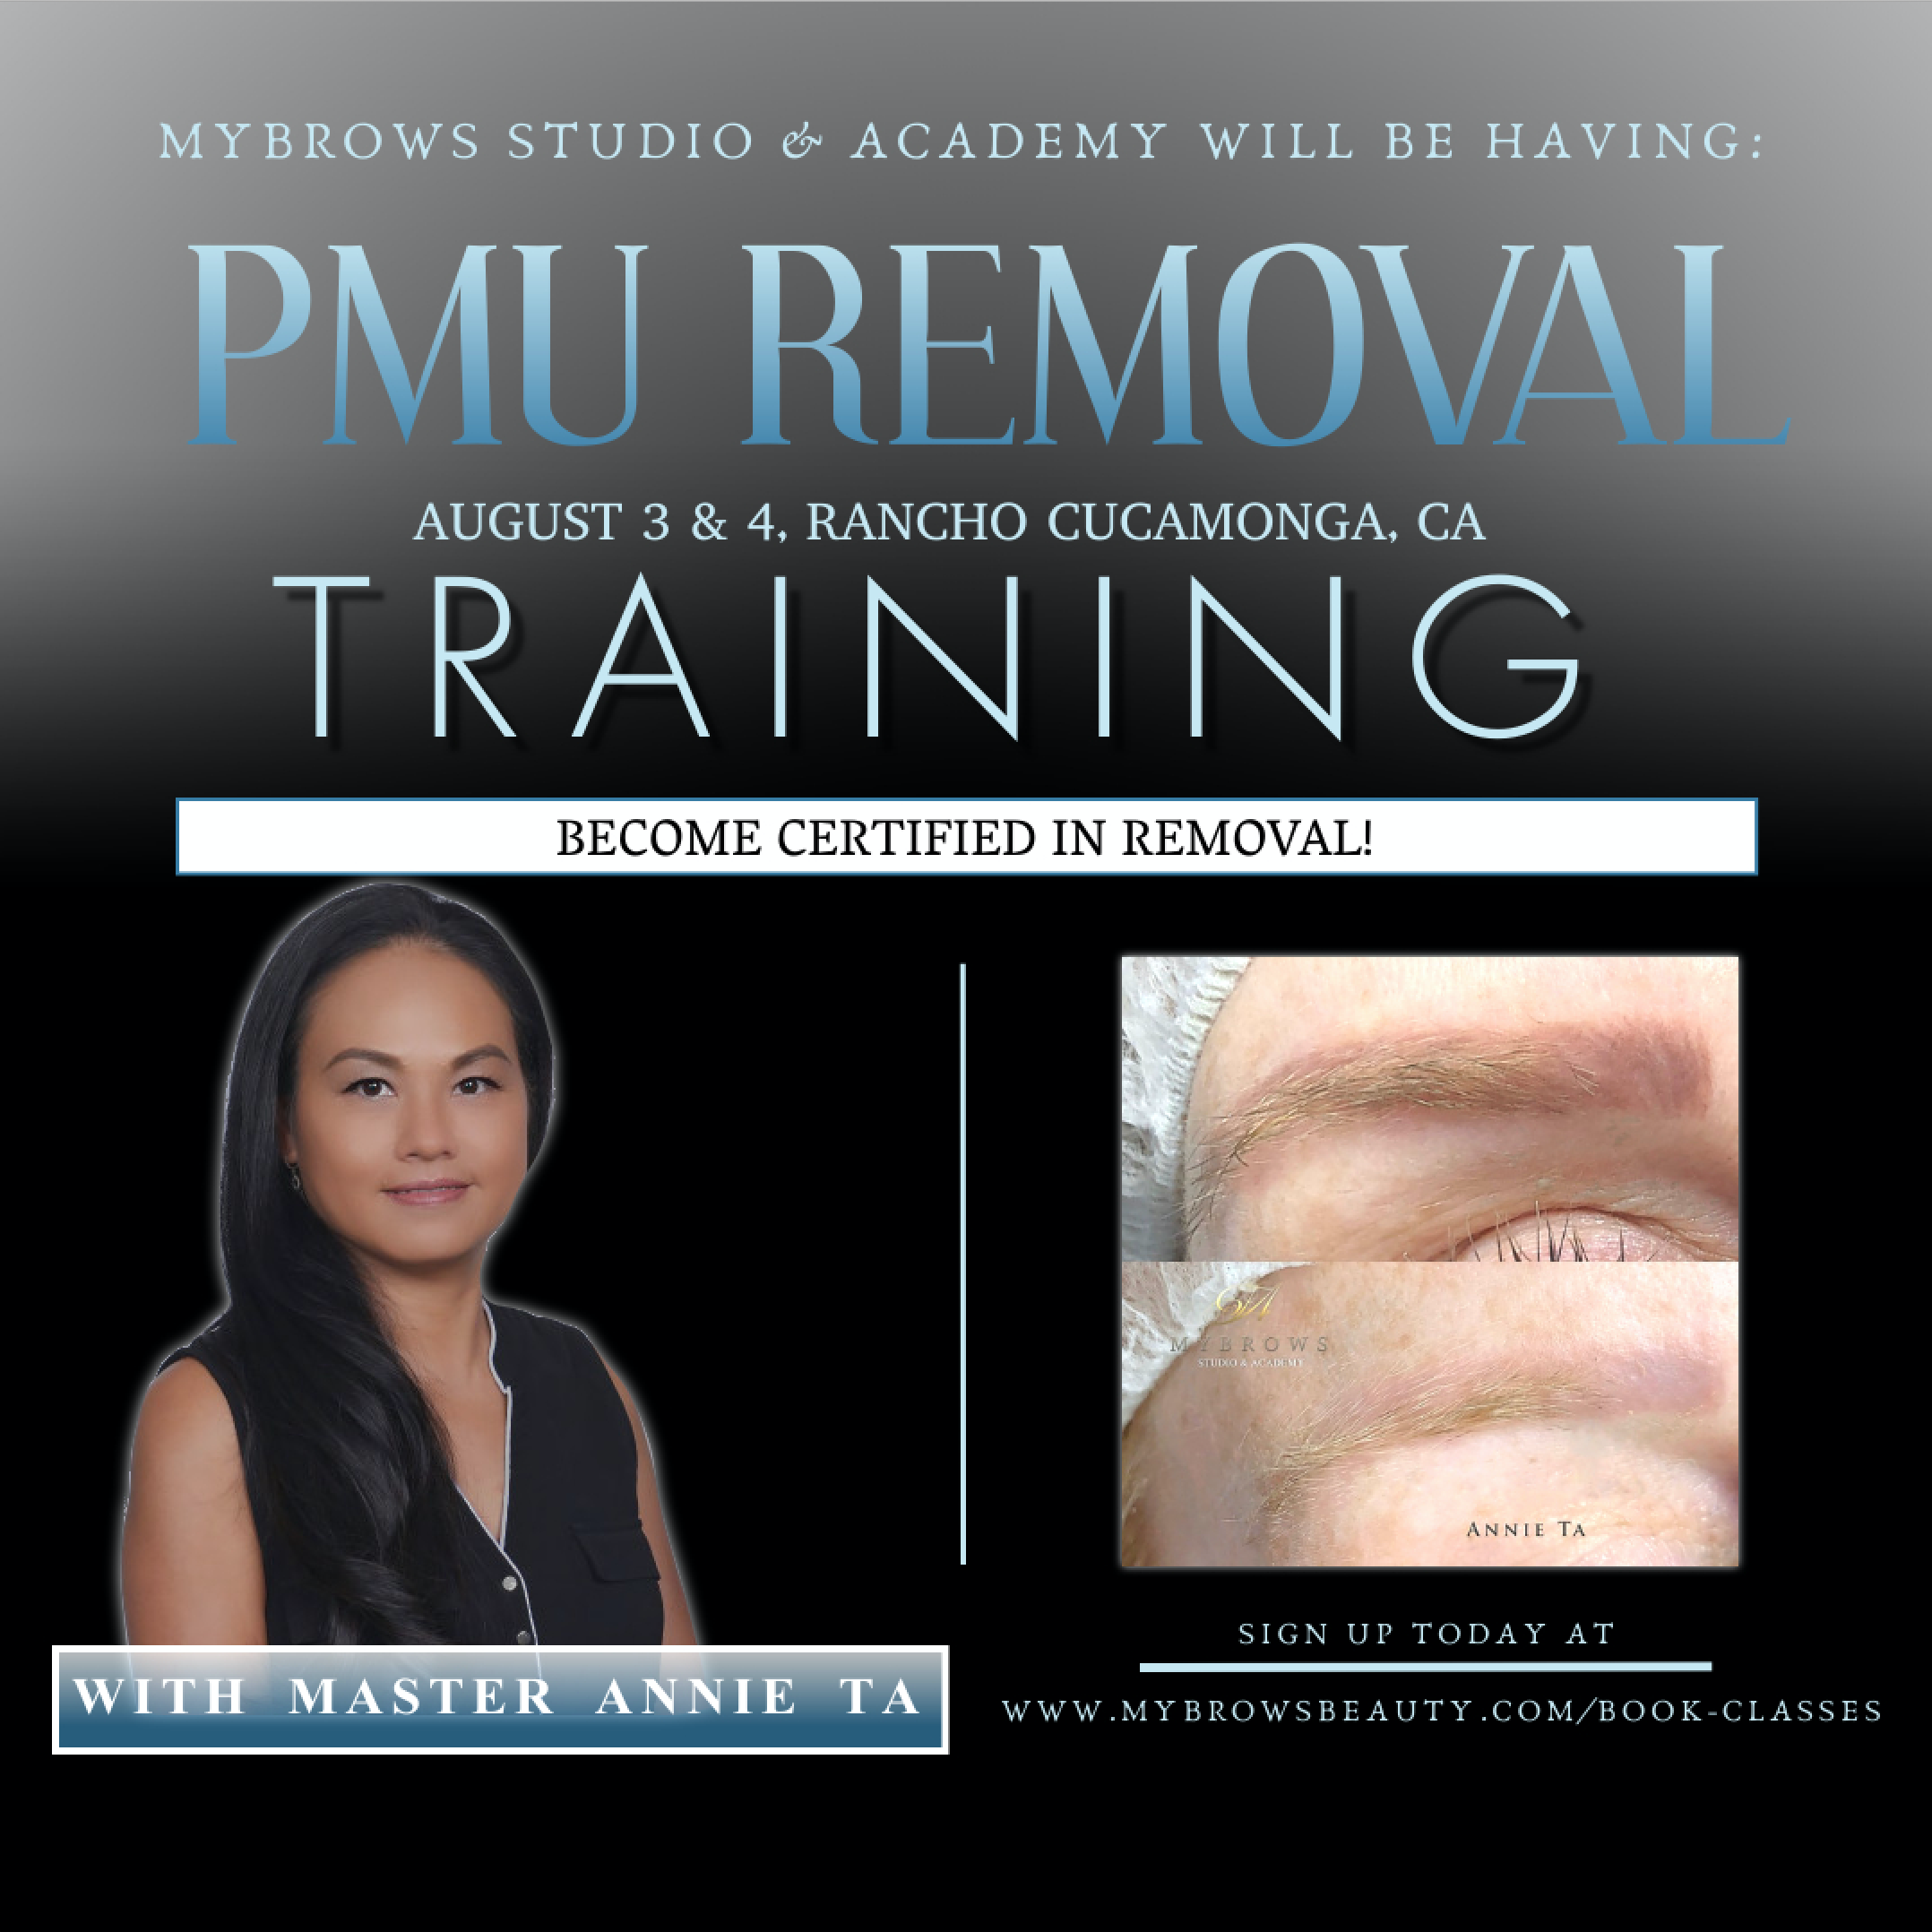 2 DAY REMOVAL TRAINING COURSE